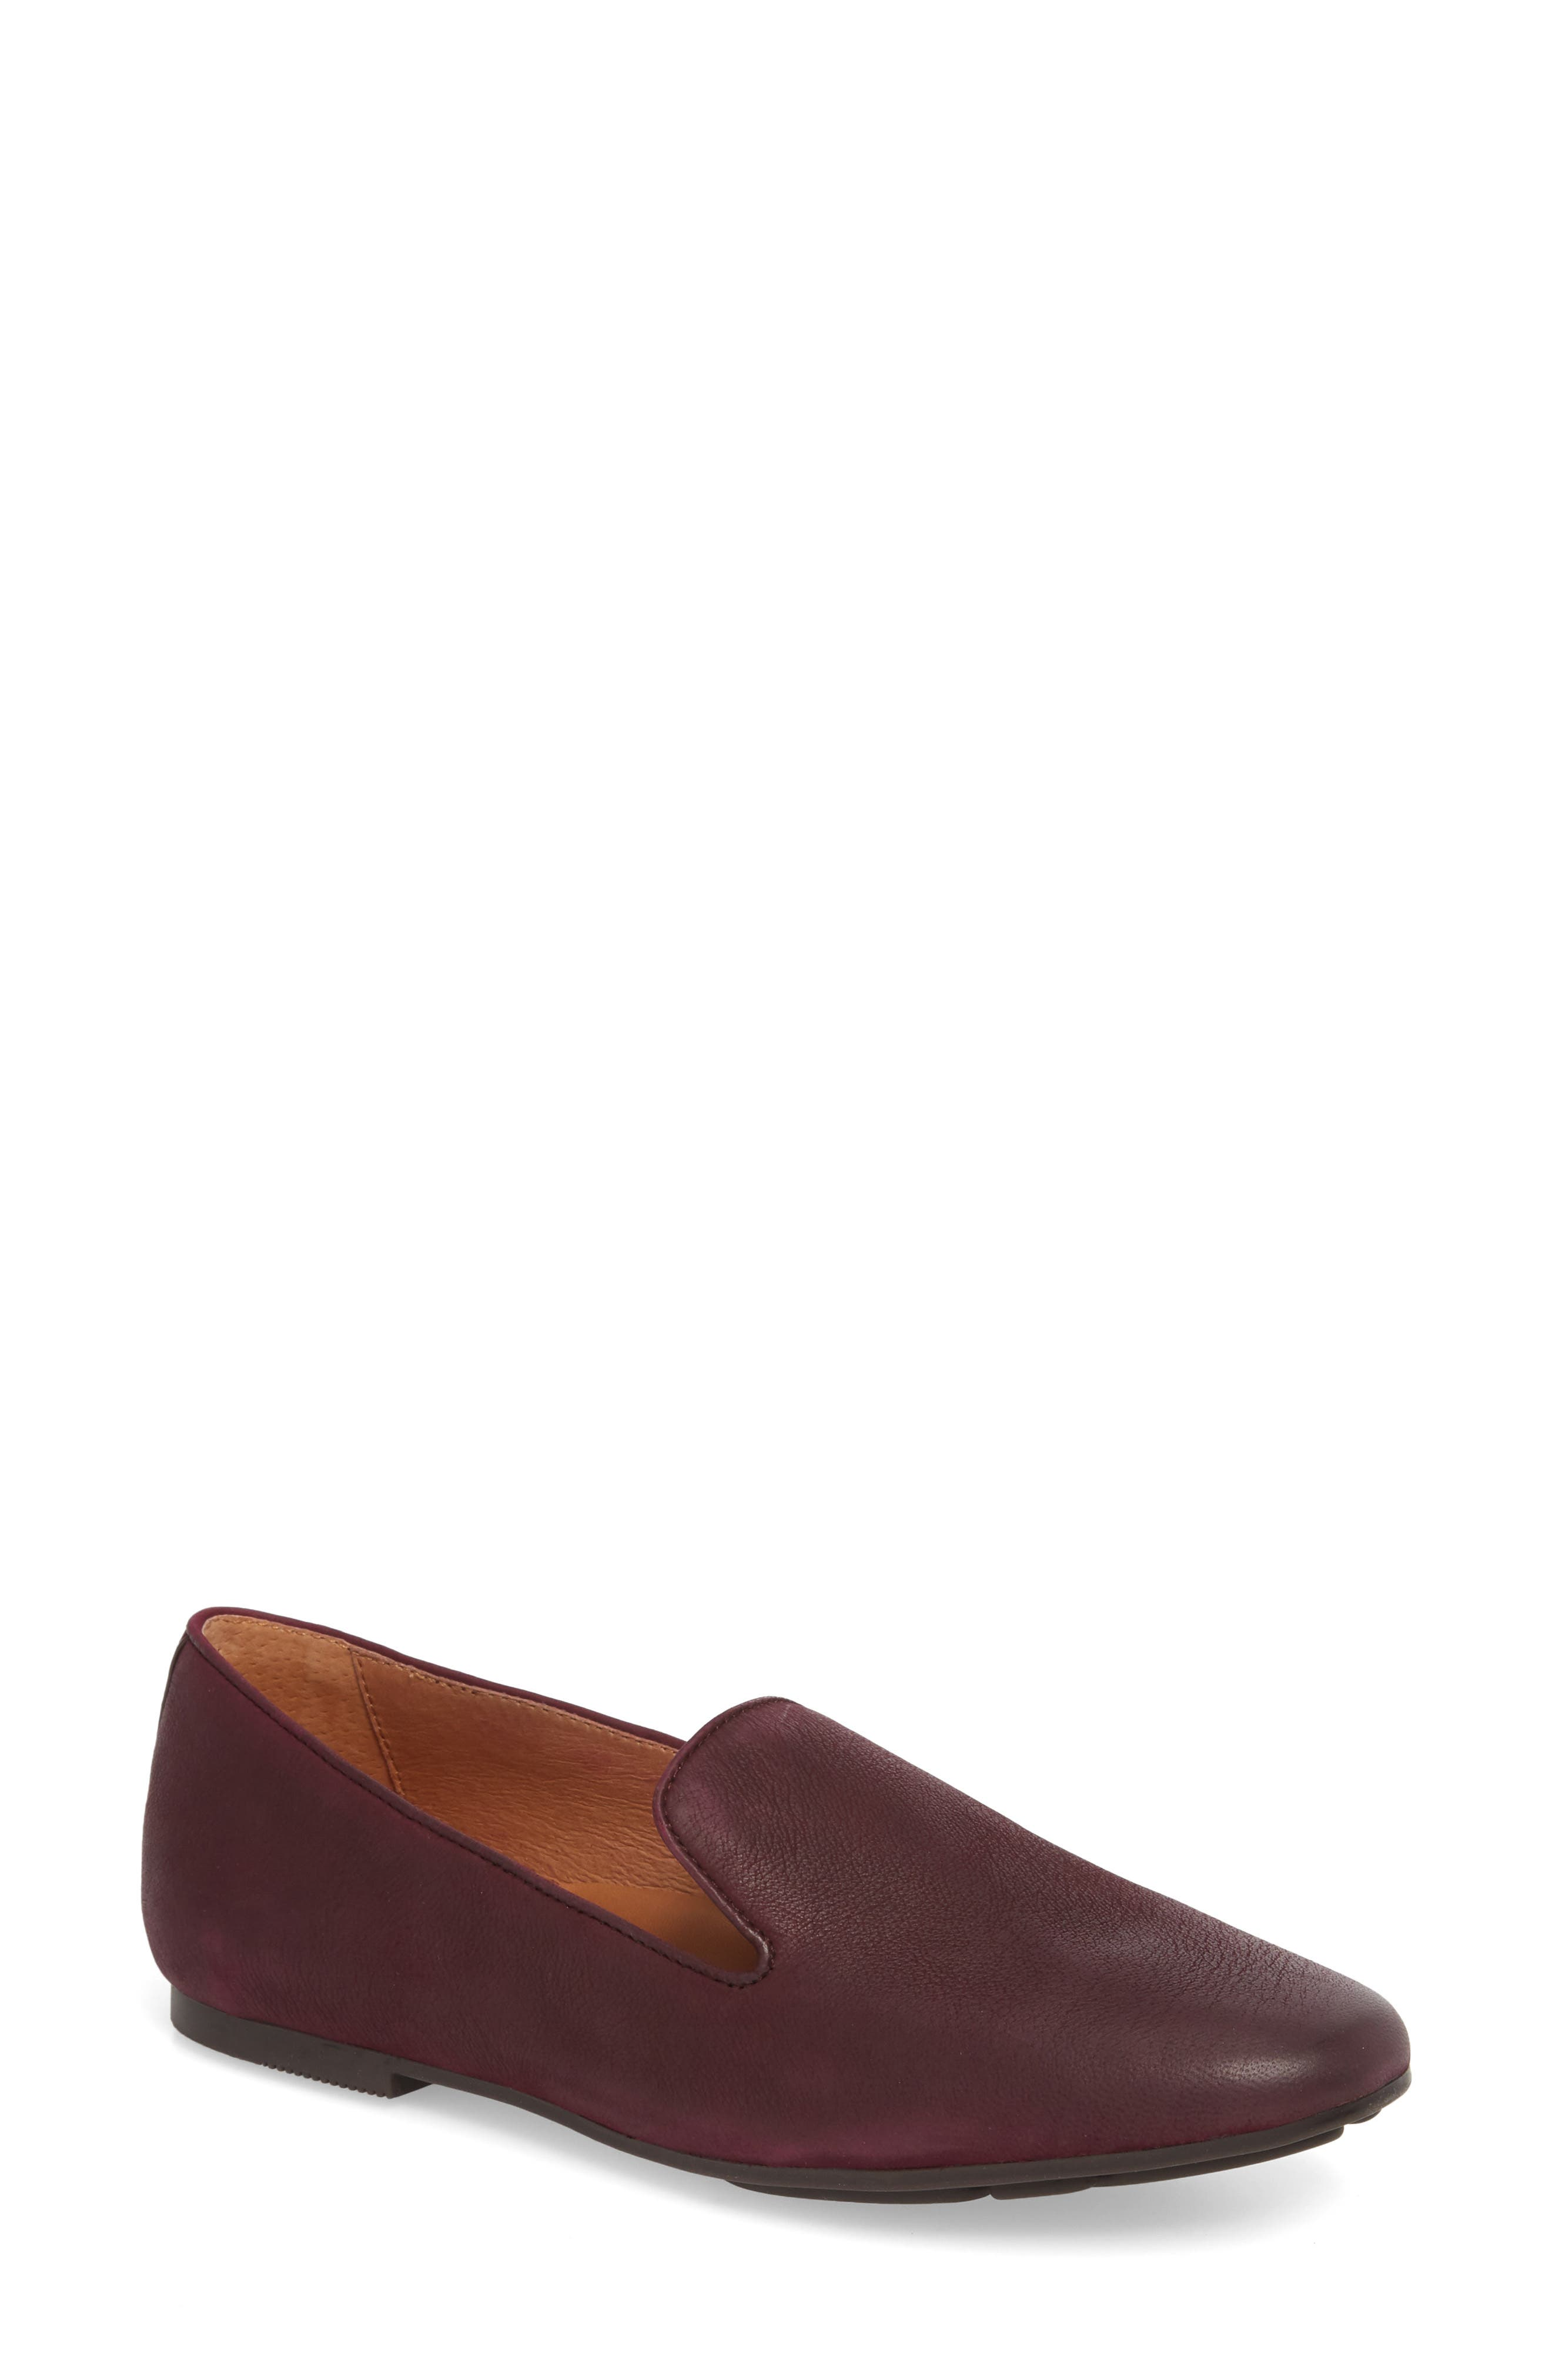 GENTLE SOULS BY KENNETH COLE, Eugene Flat, Main thumbnail 1, color, 504